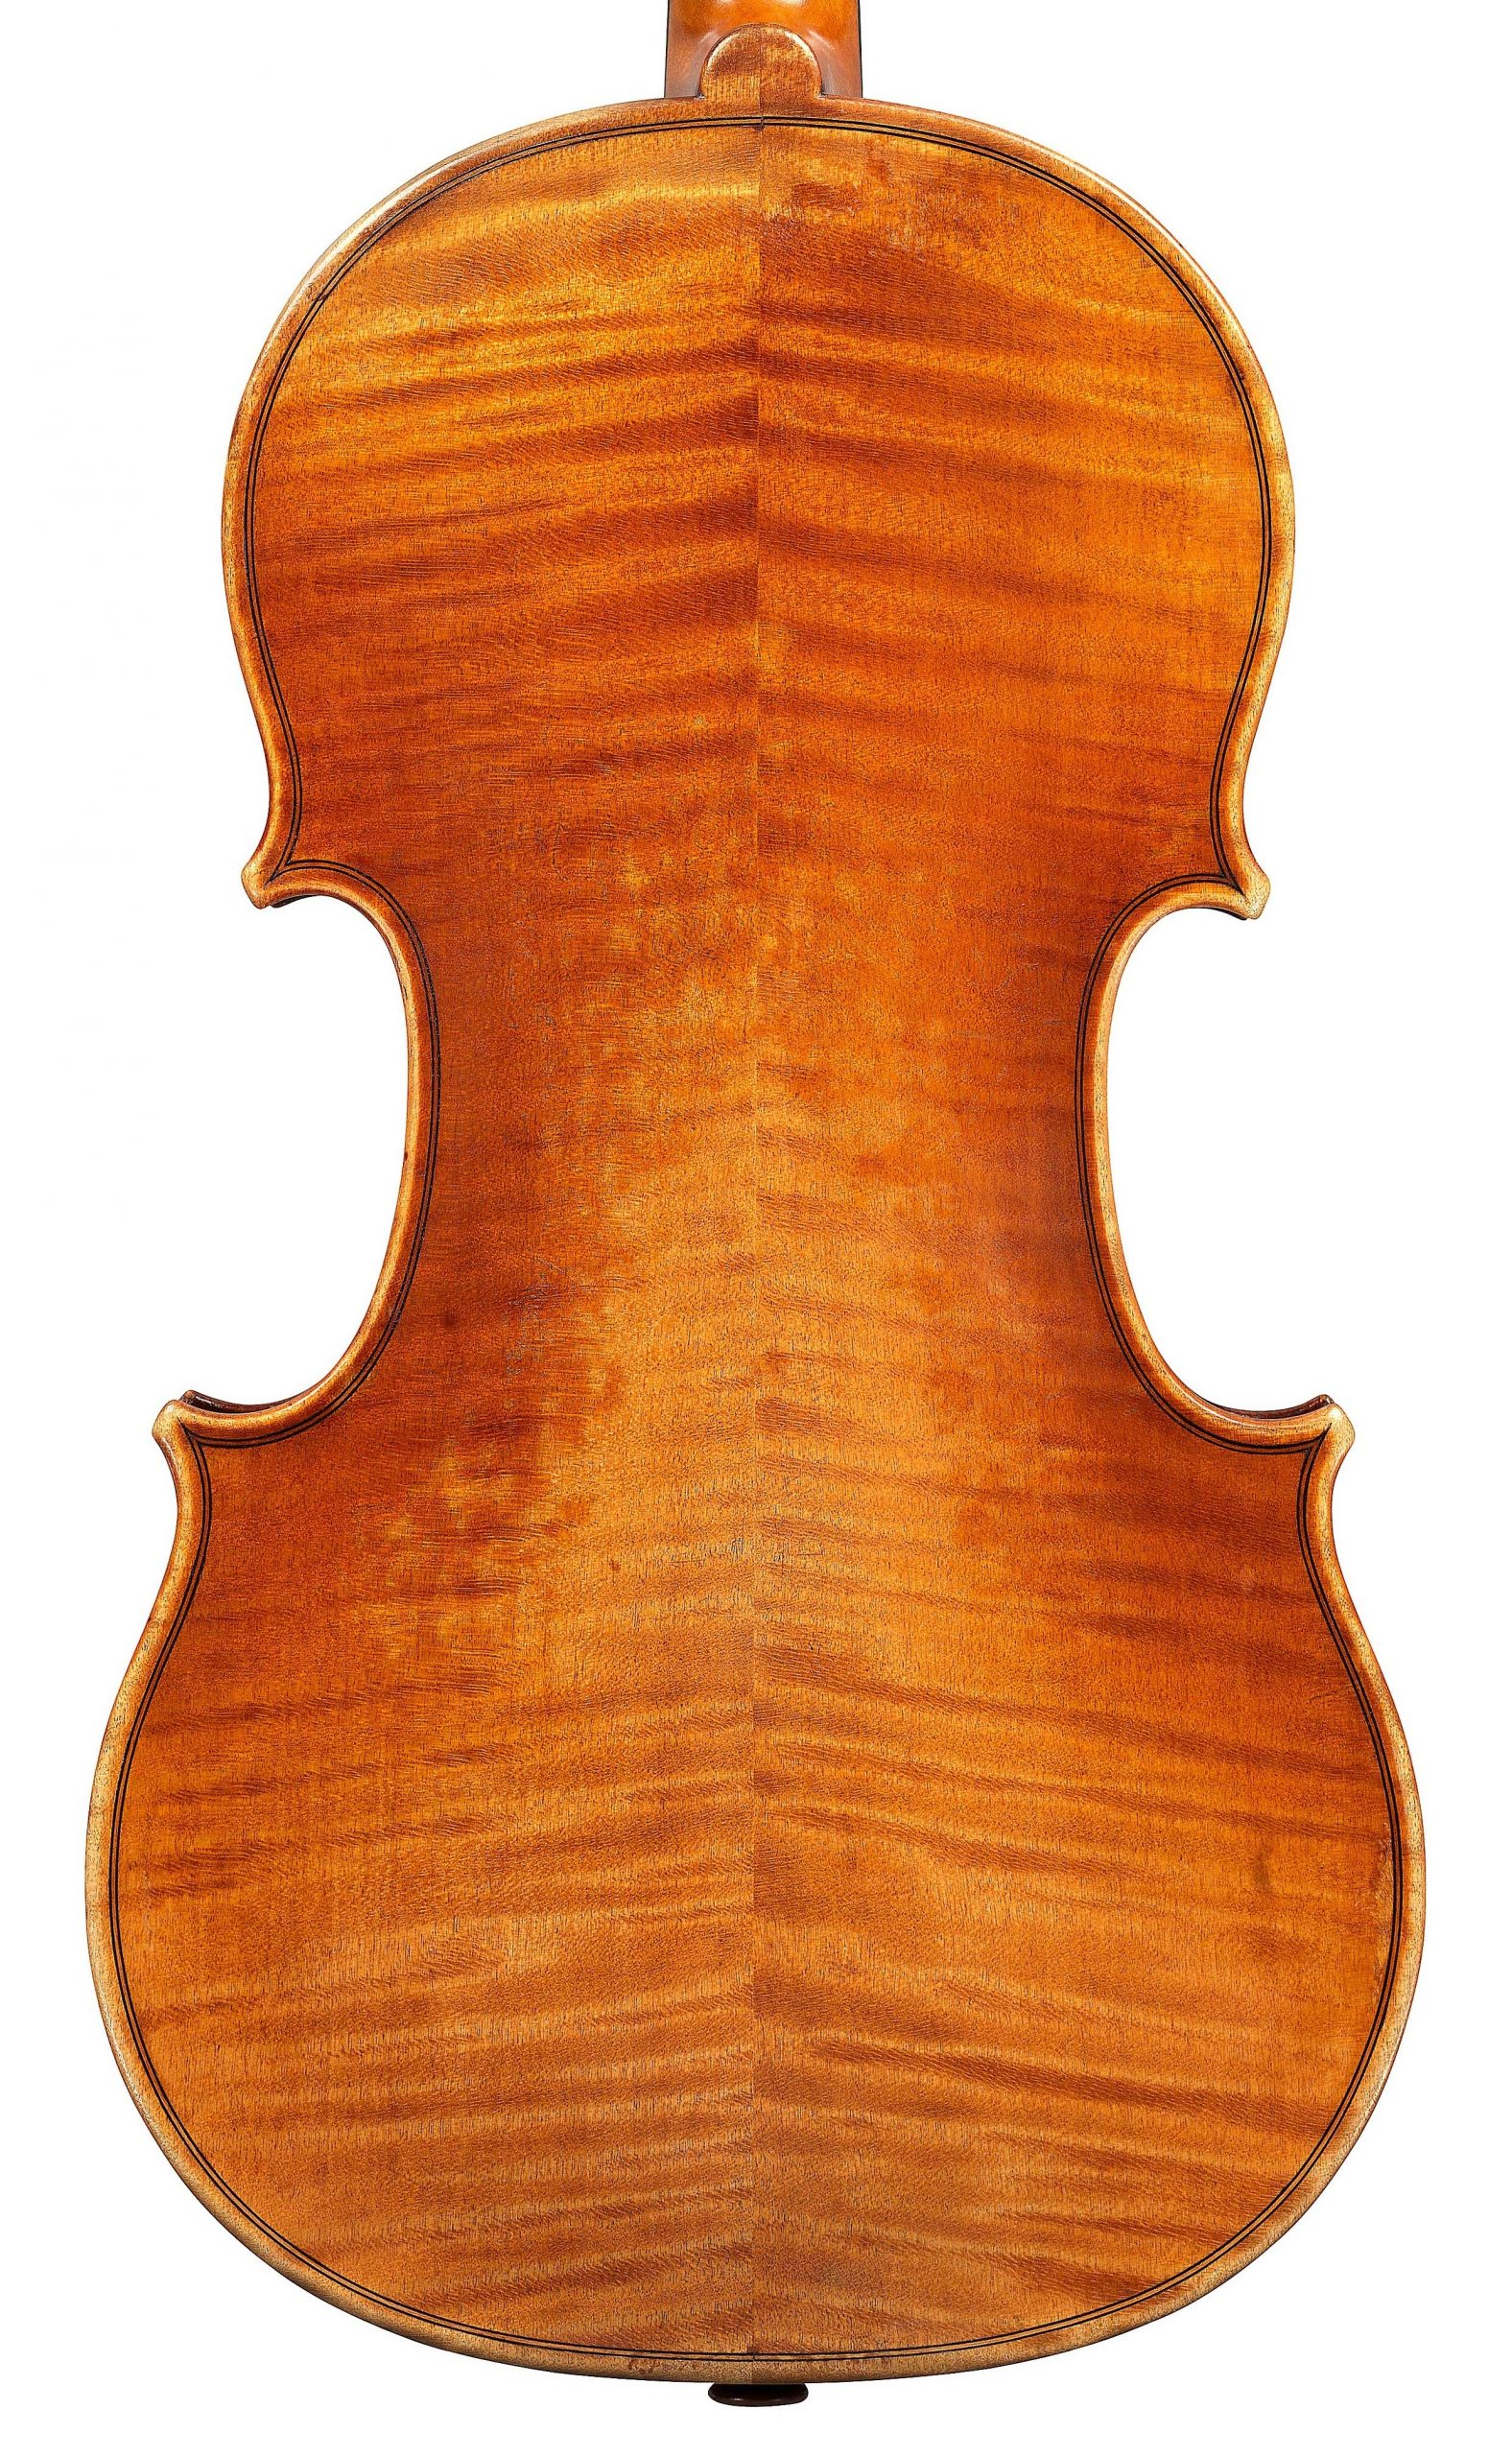 Back of violin by JB Vuillaume, ex-Sin, dated 1865, exhibited by Ingles & Hayday at Sotheby's in 2012 and now played by Hilary Hahn